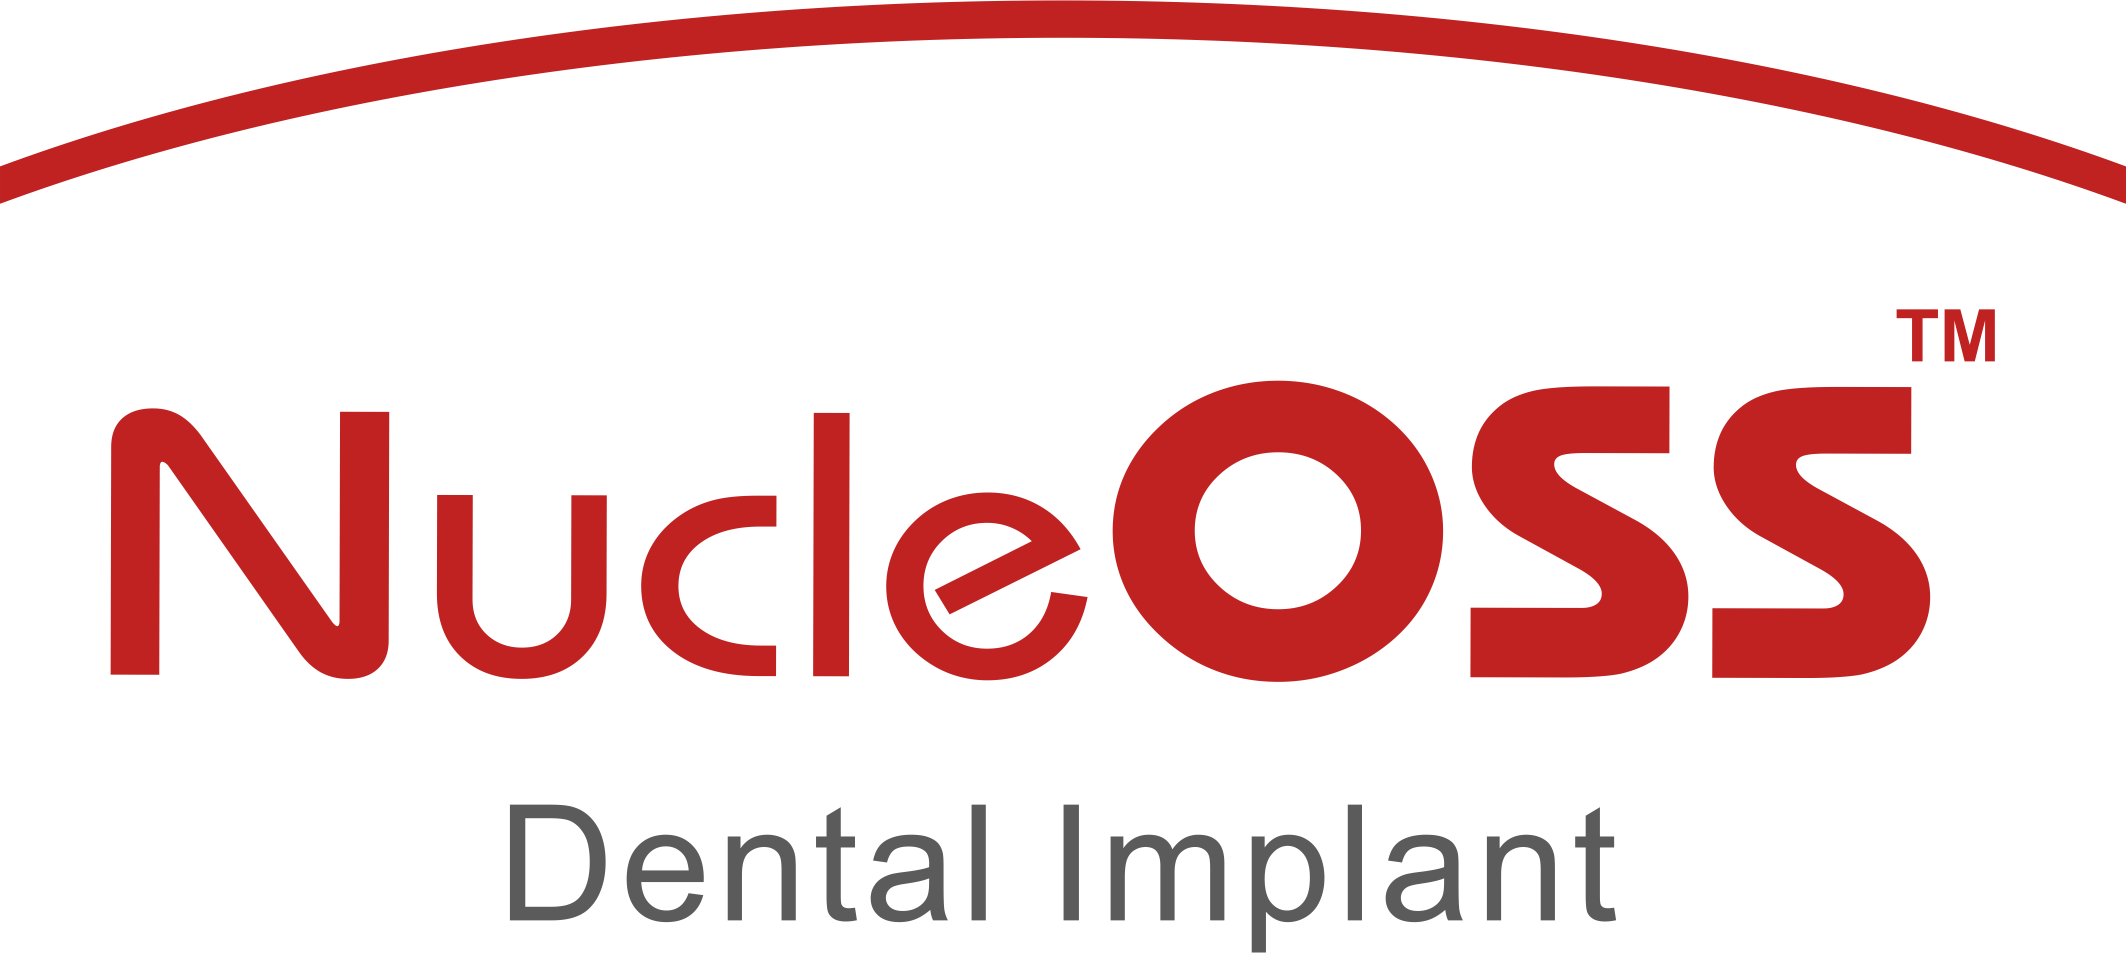 Nucleoss Dental Implant